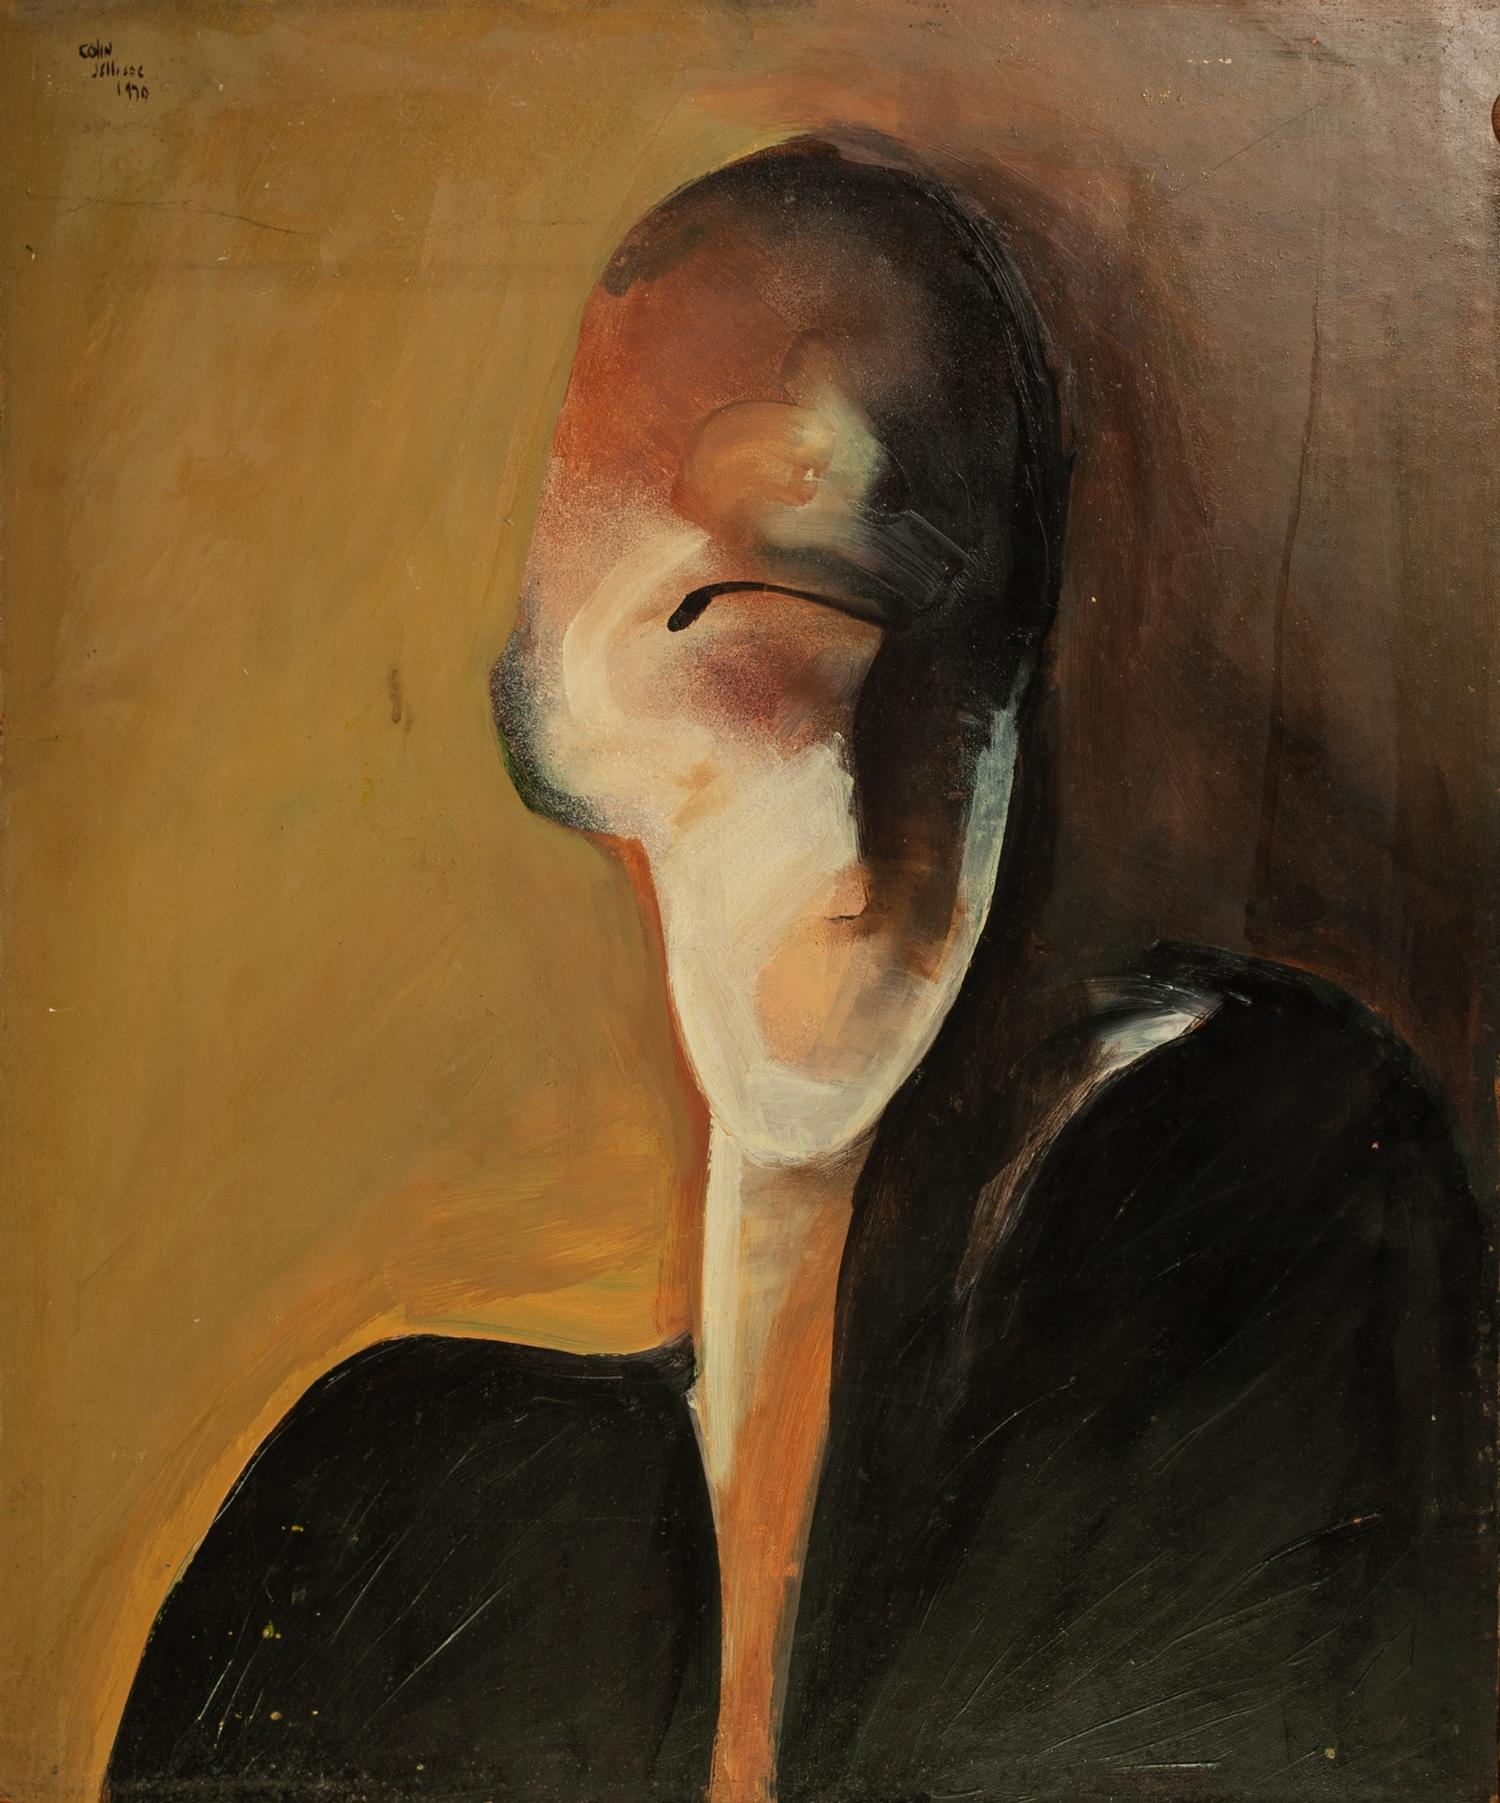 Lot 83 - COLIN JELLICOE (1942-2018) OIL ON BOARD ?Shifting Face? Signed and dated 1990, titled verso 24? x